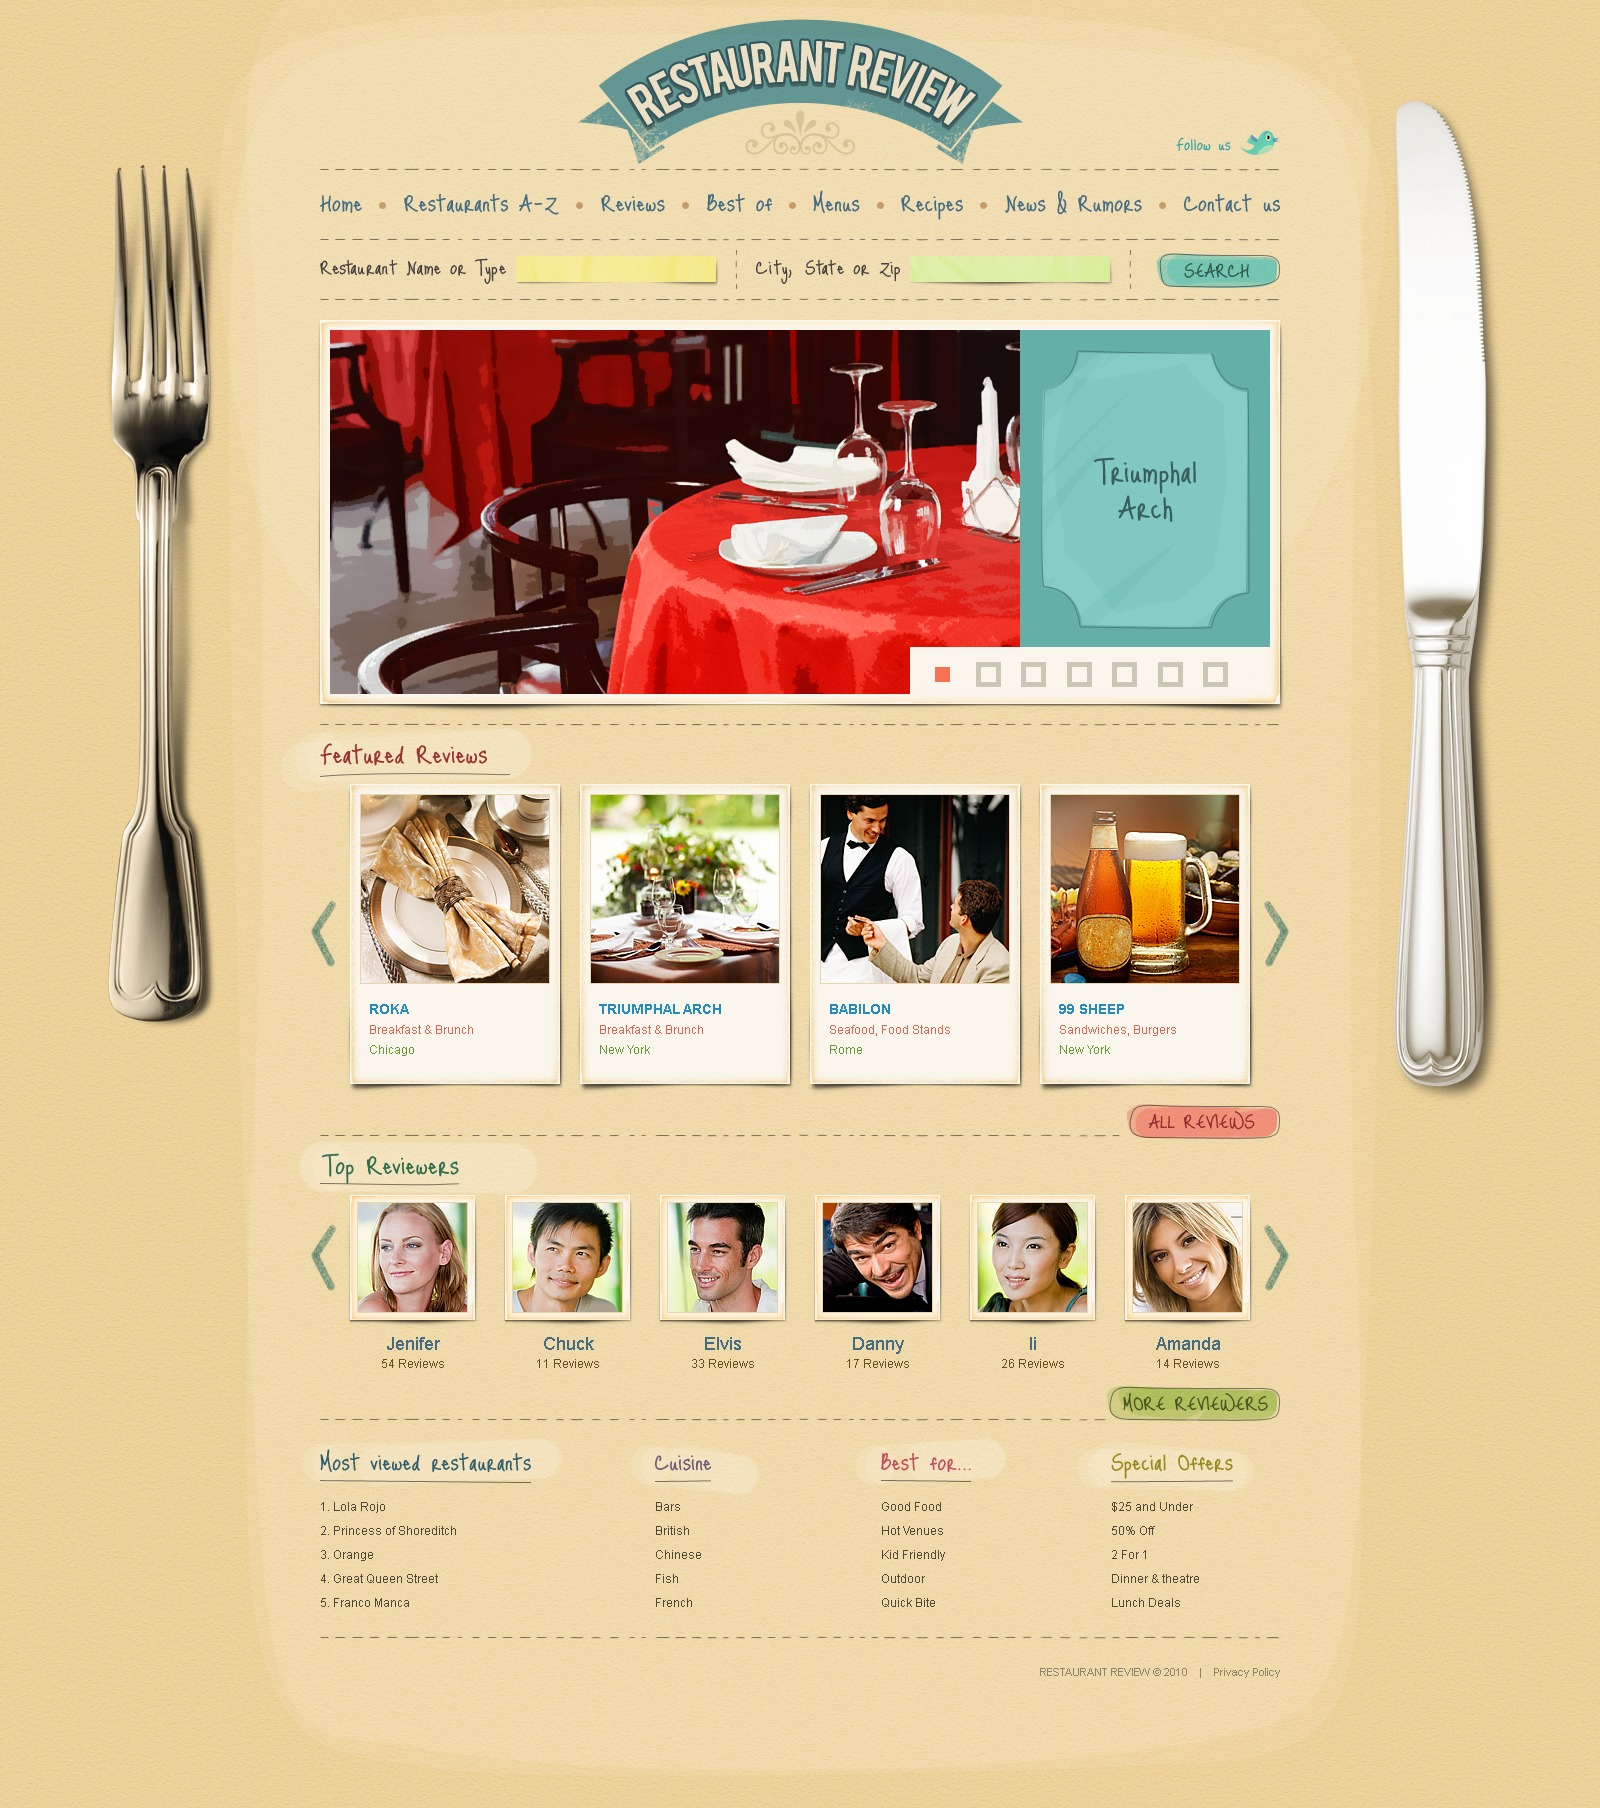 The Review Restaurant PSD Design 54308, one of the best PSD templates of its kind (cafe and restaurant, flash 8, wide, jquery), also known as review restaurant PSD template, food PSD template, critic PSD template, reviewer PSD template, tasty PSD template, delicious PSD template, dish PSD template, menu PSD template, dining and related with review restaurant, food, critic, reviewer, tasty, delicious, dish, menu, dining, etc.